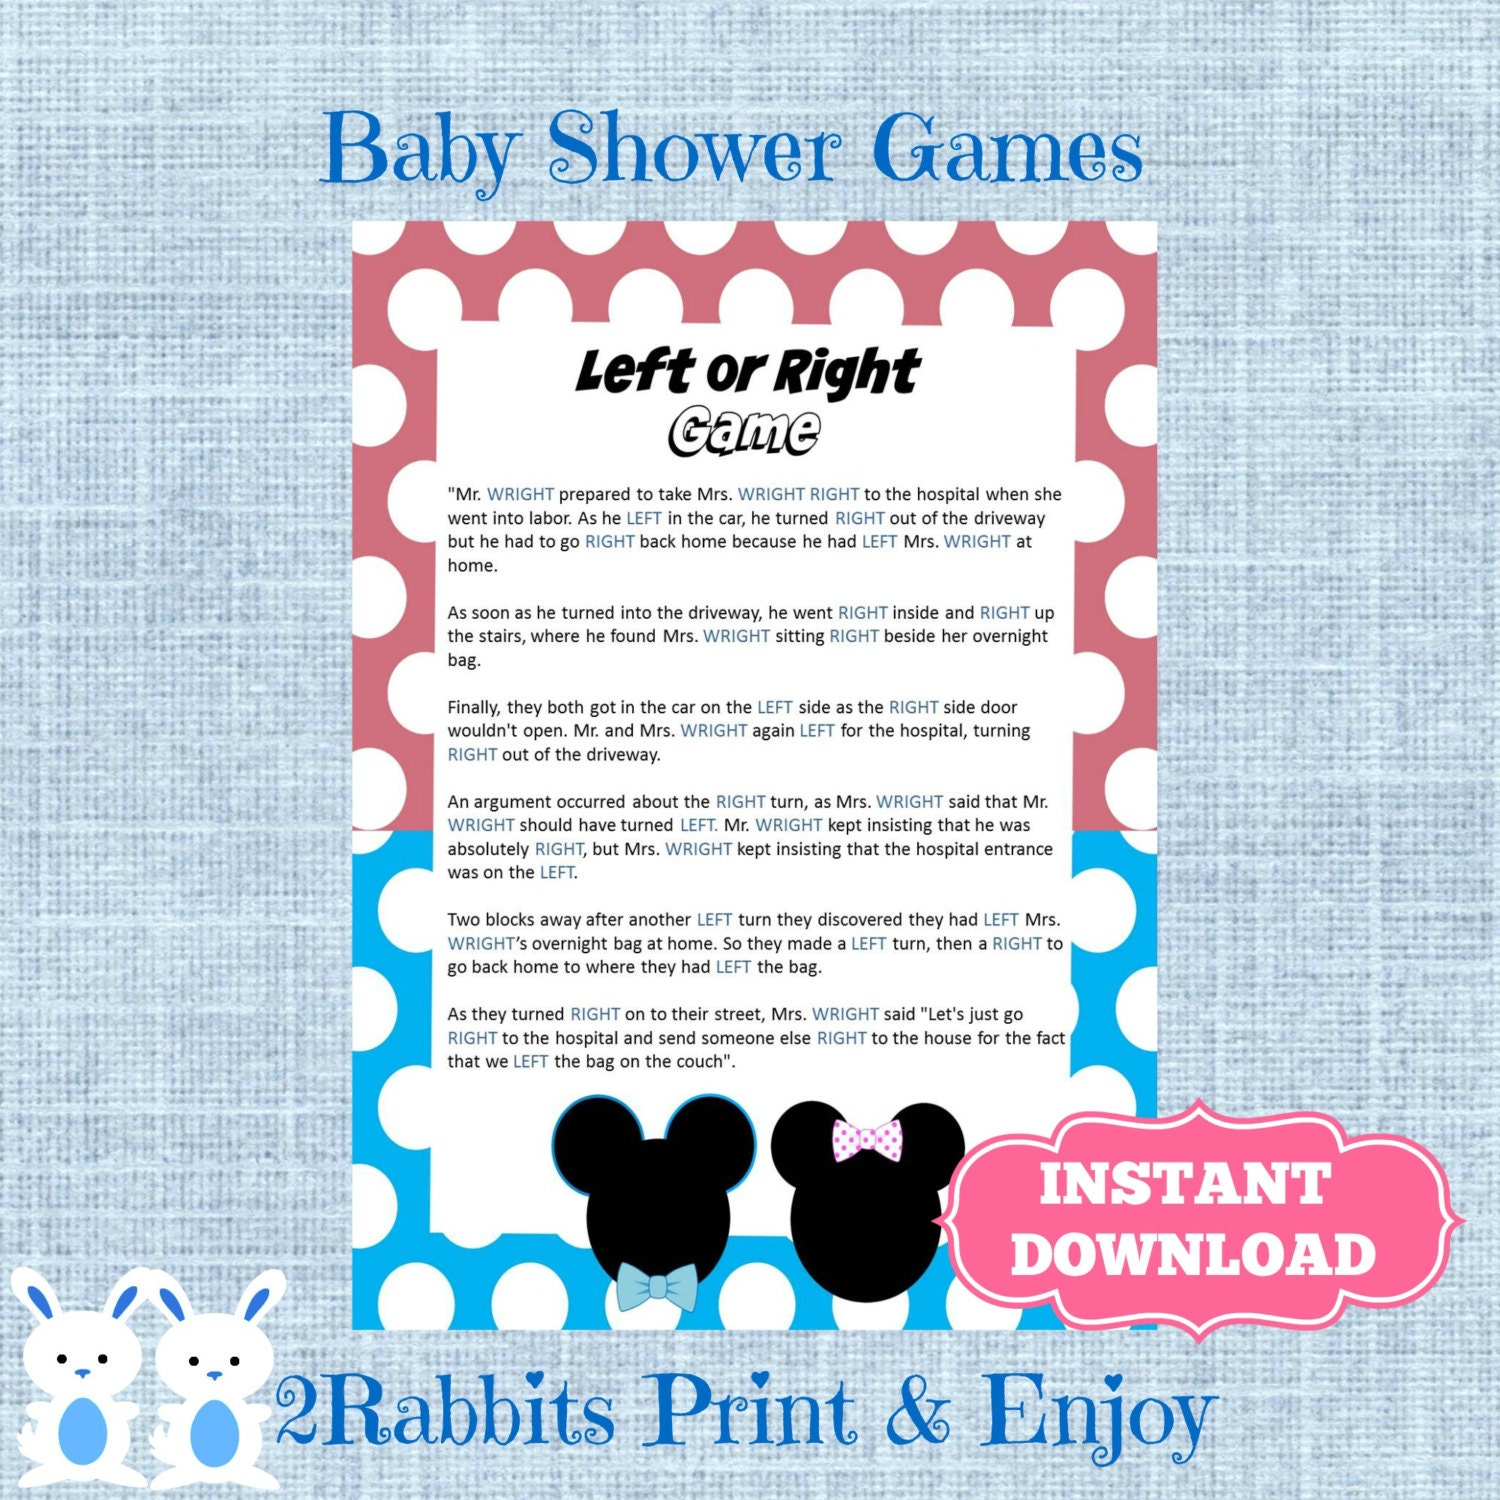 26 Images The Left Right Baby Shower Game Free - baby shower